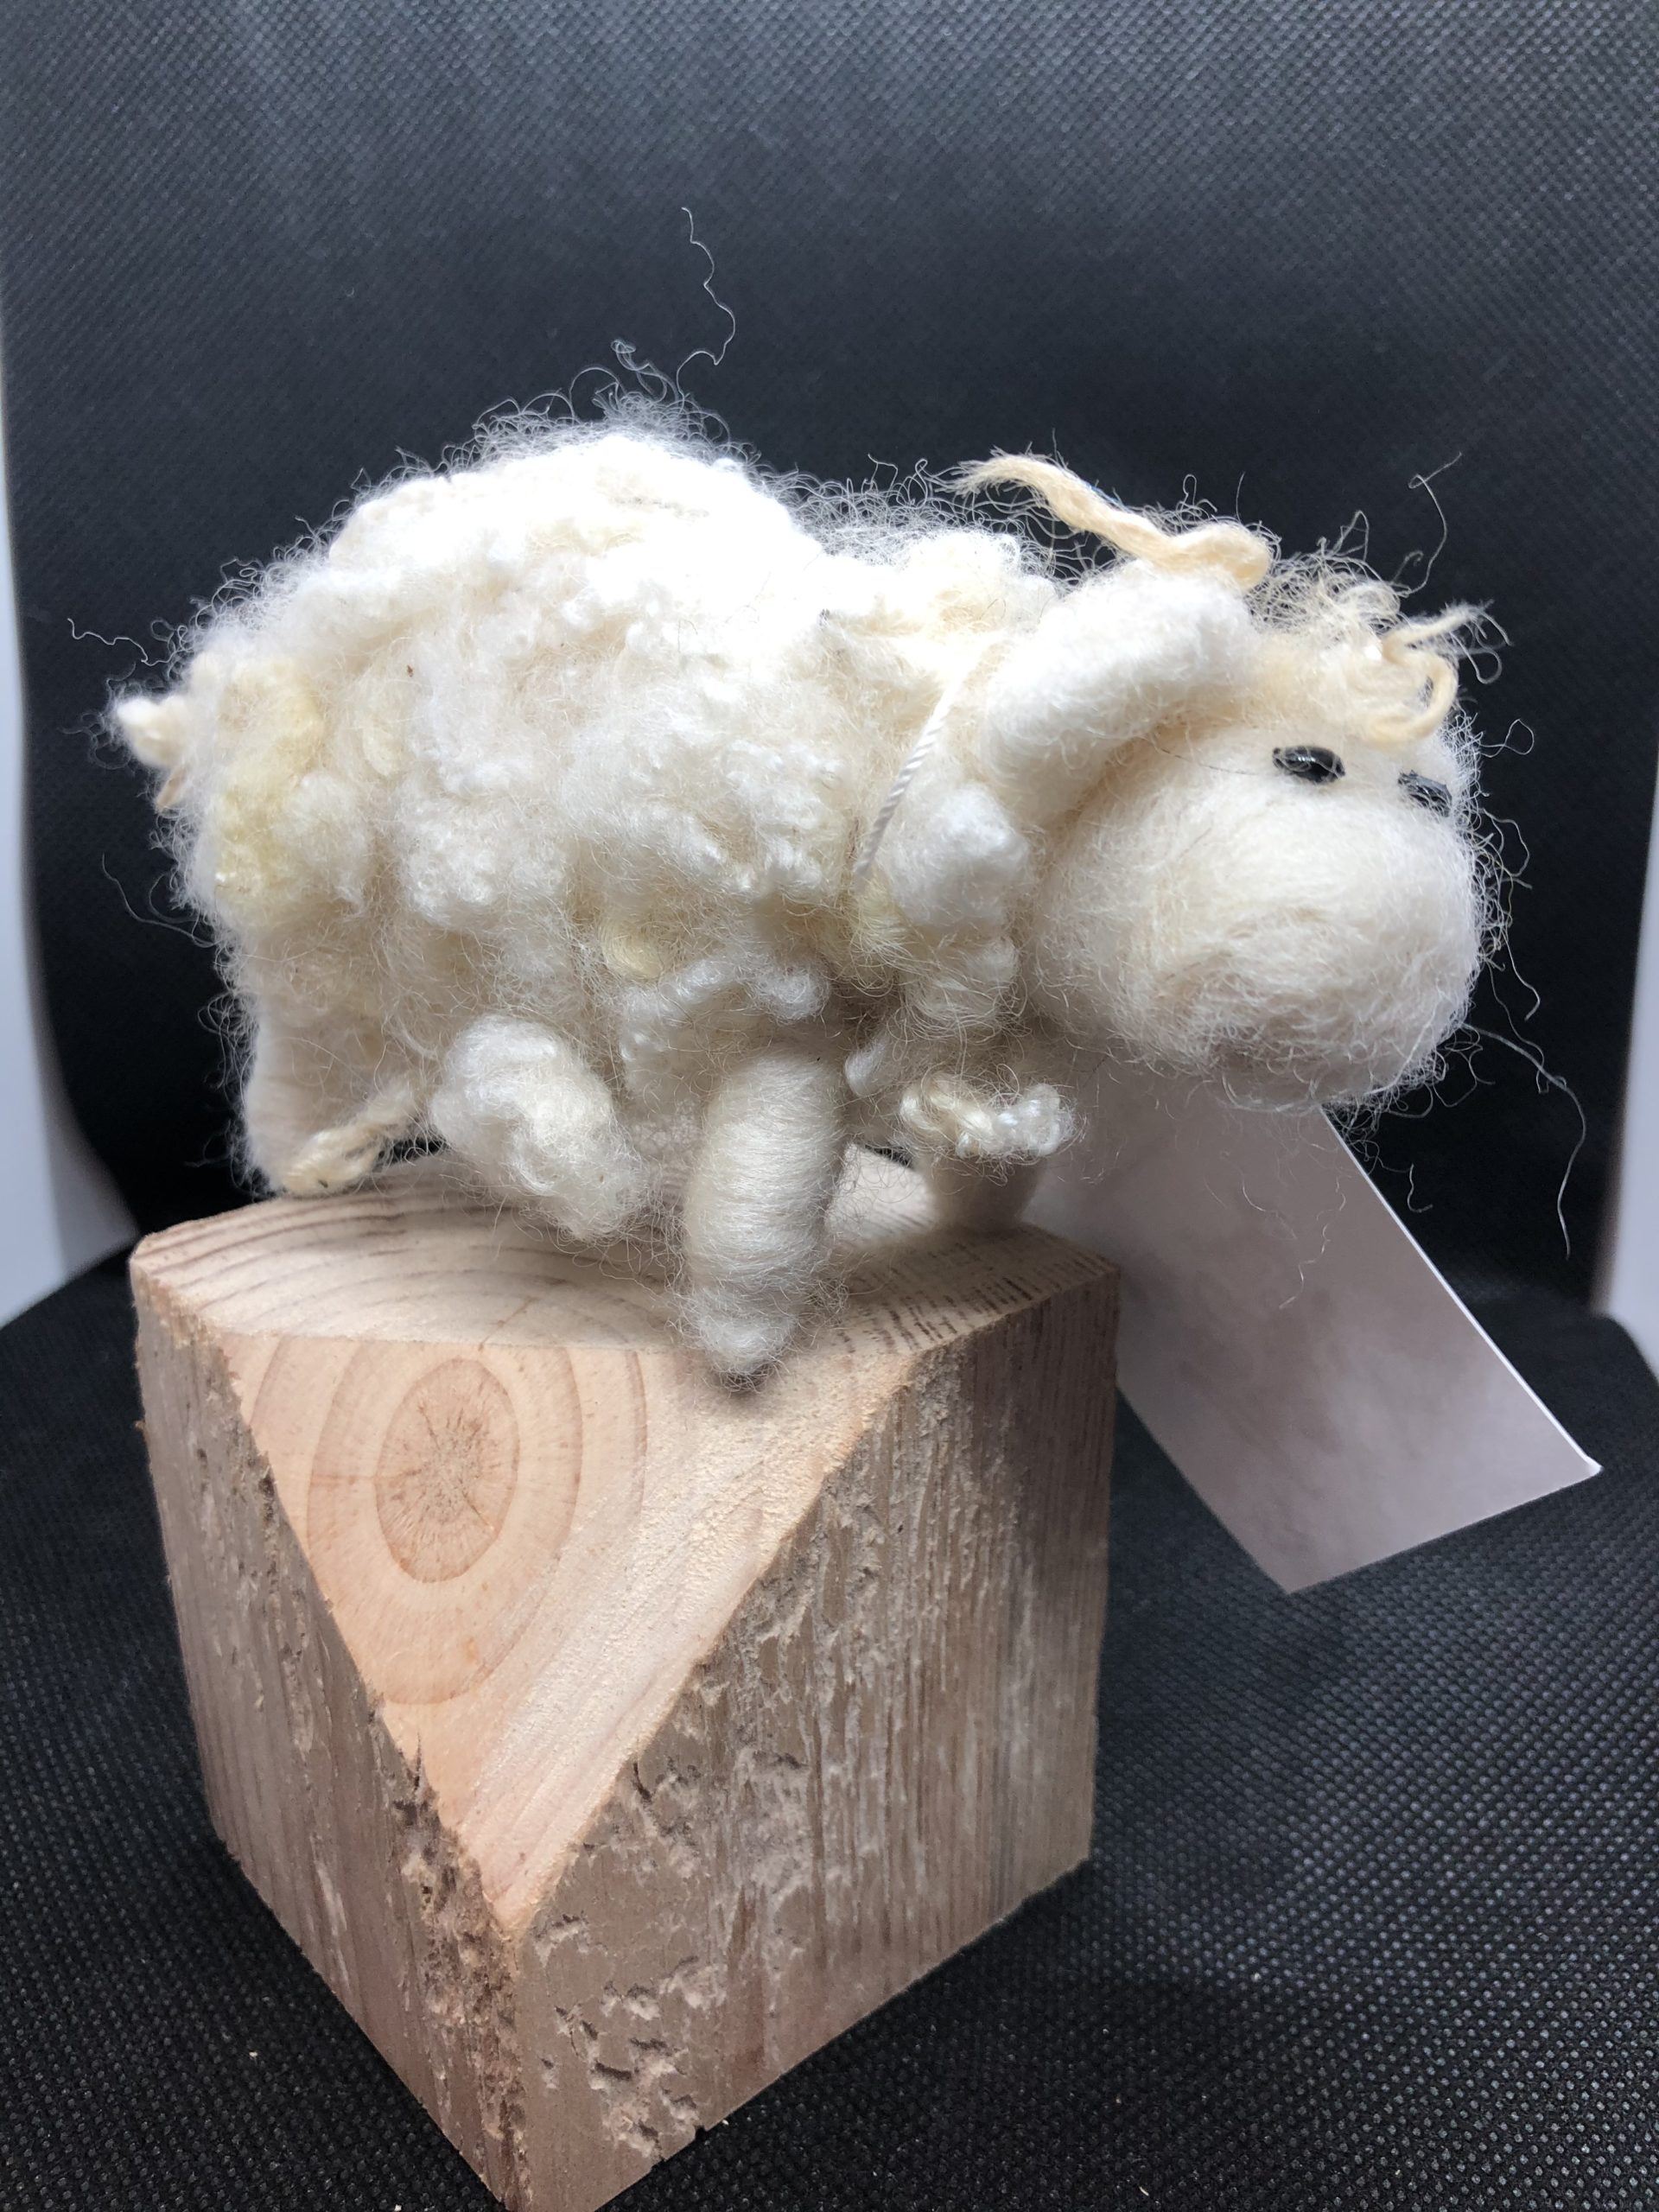 white felted sheep balanced on block on wood